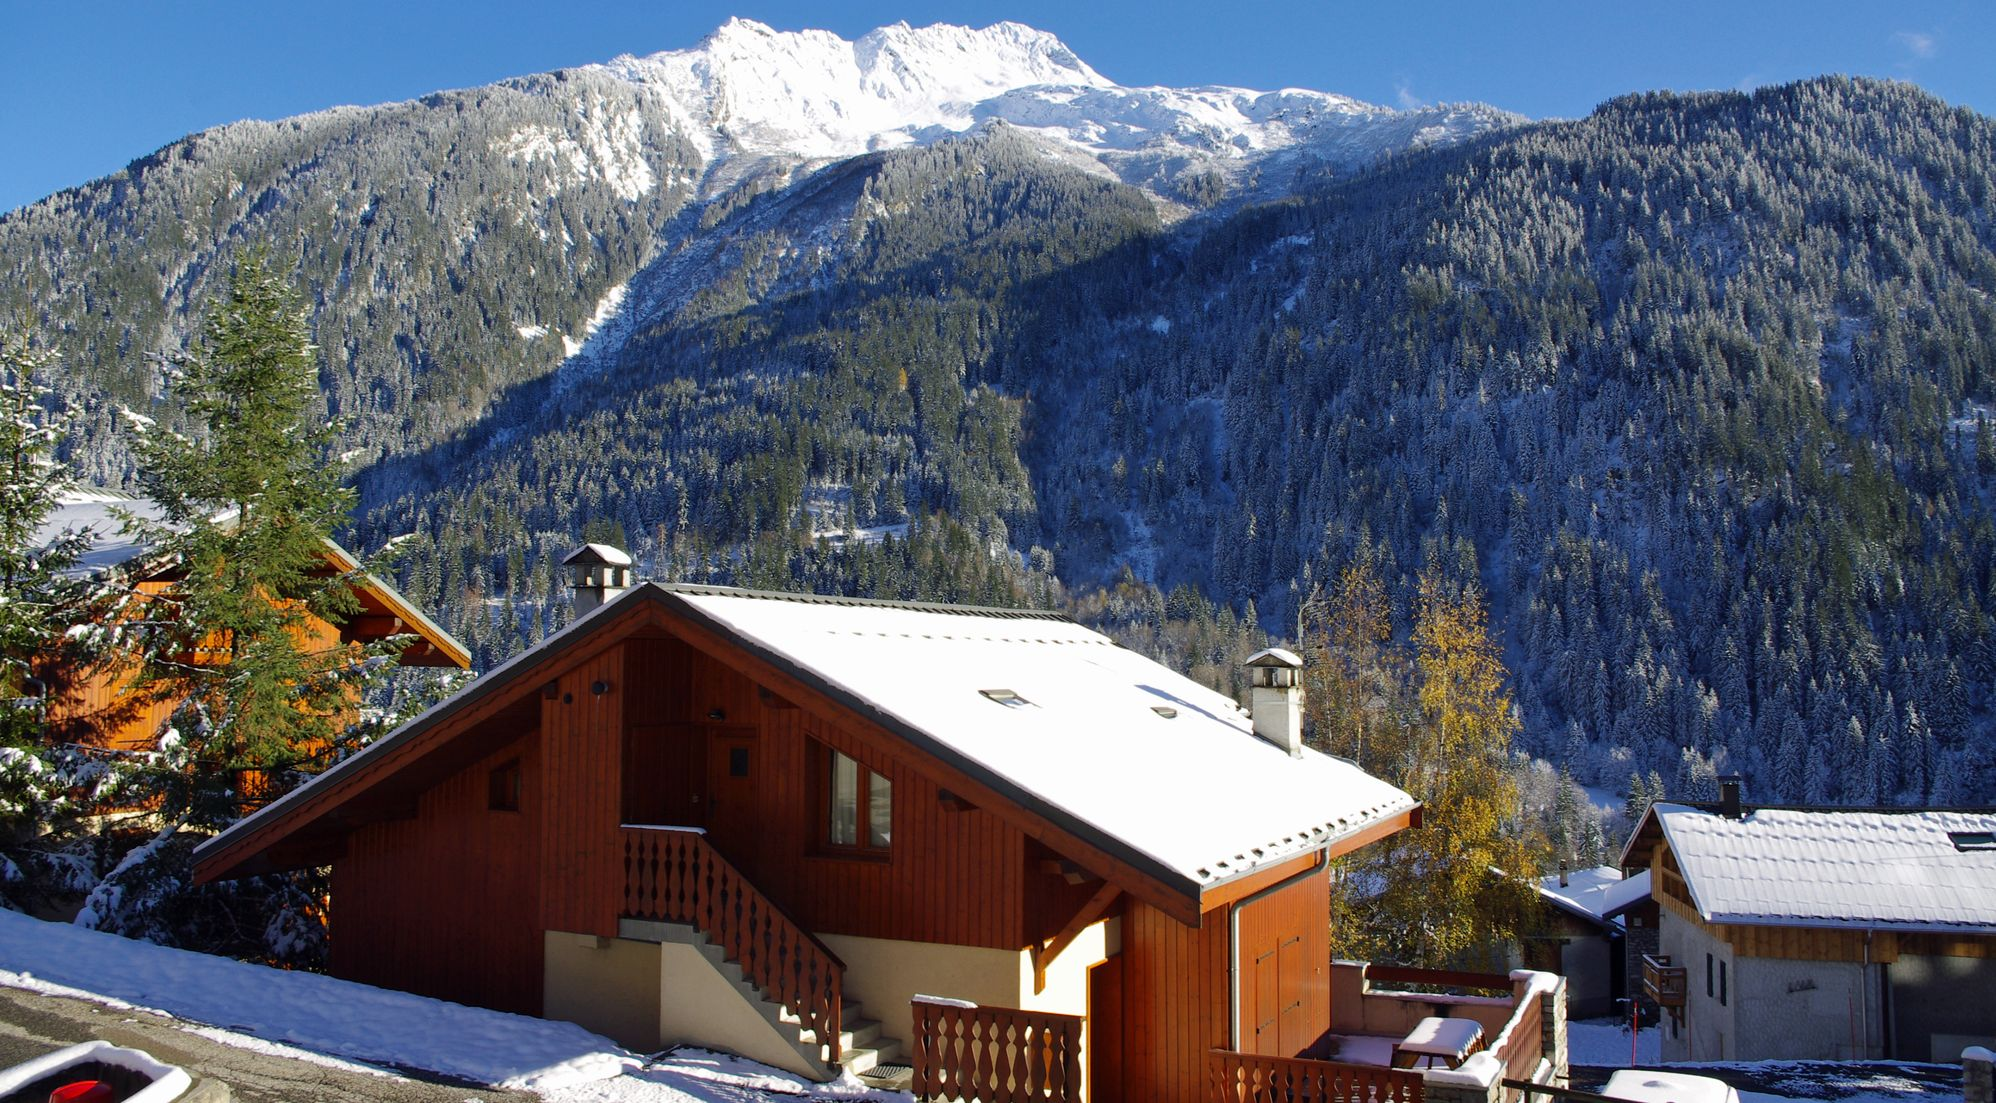 Location Champagny - Chalet Roselin B - Agence du Roc Blanc